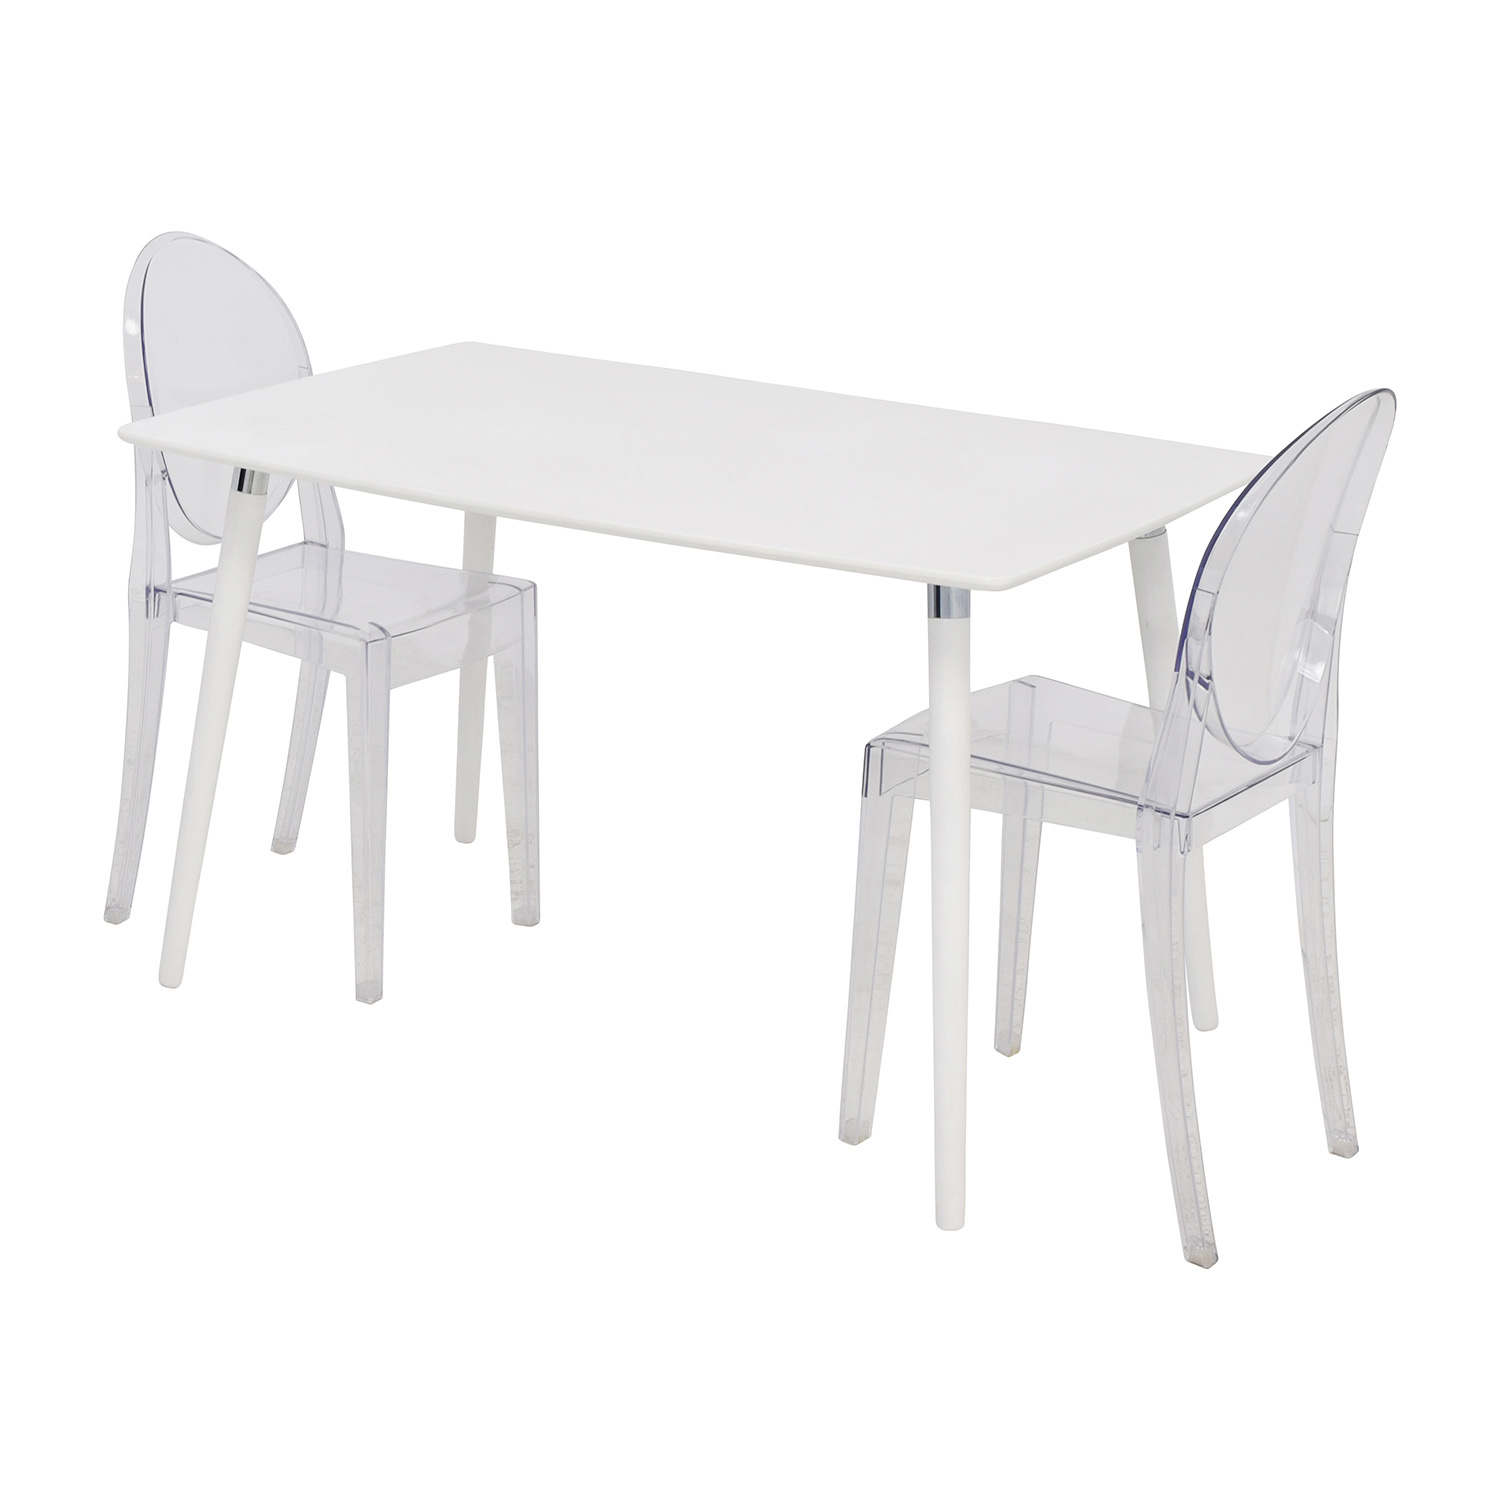 80 off white dining table set with two ghost chairs tables